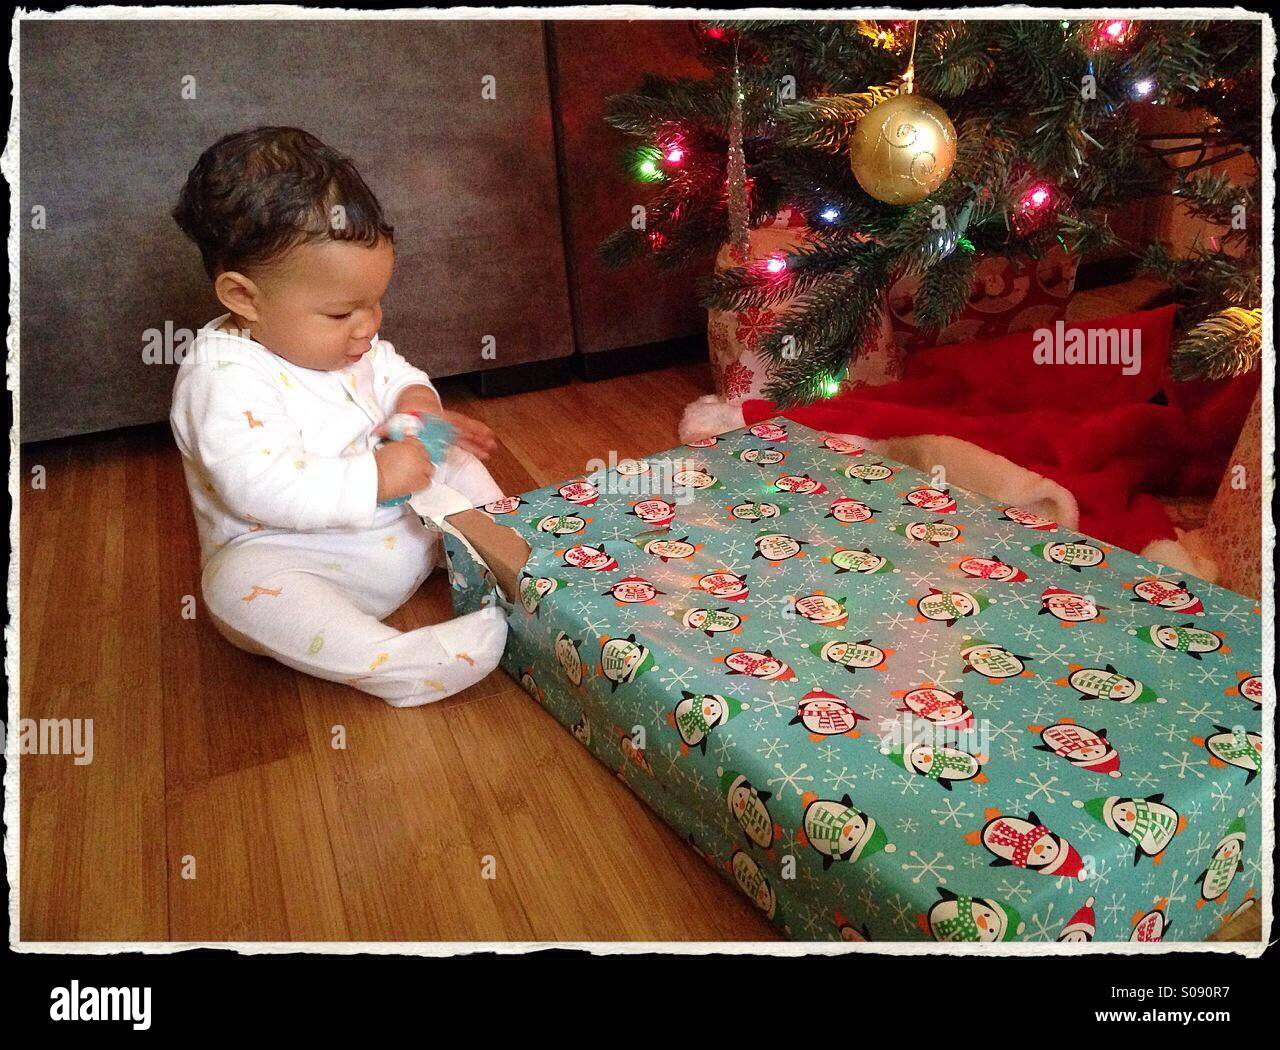 Baby's First Christmas - Stock Image